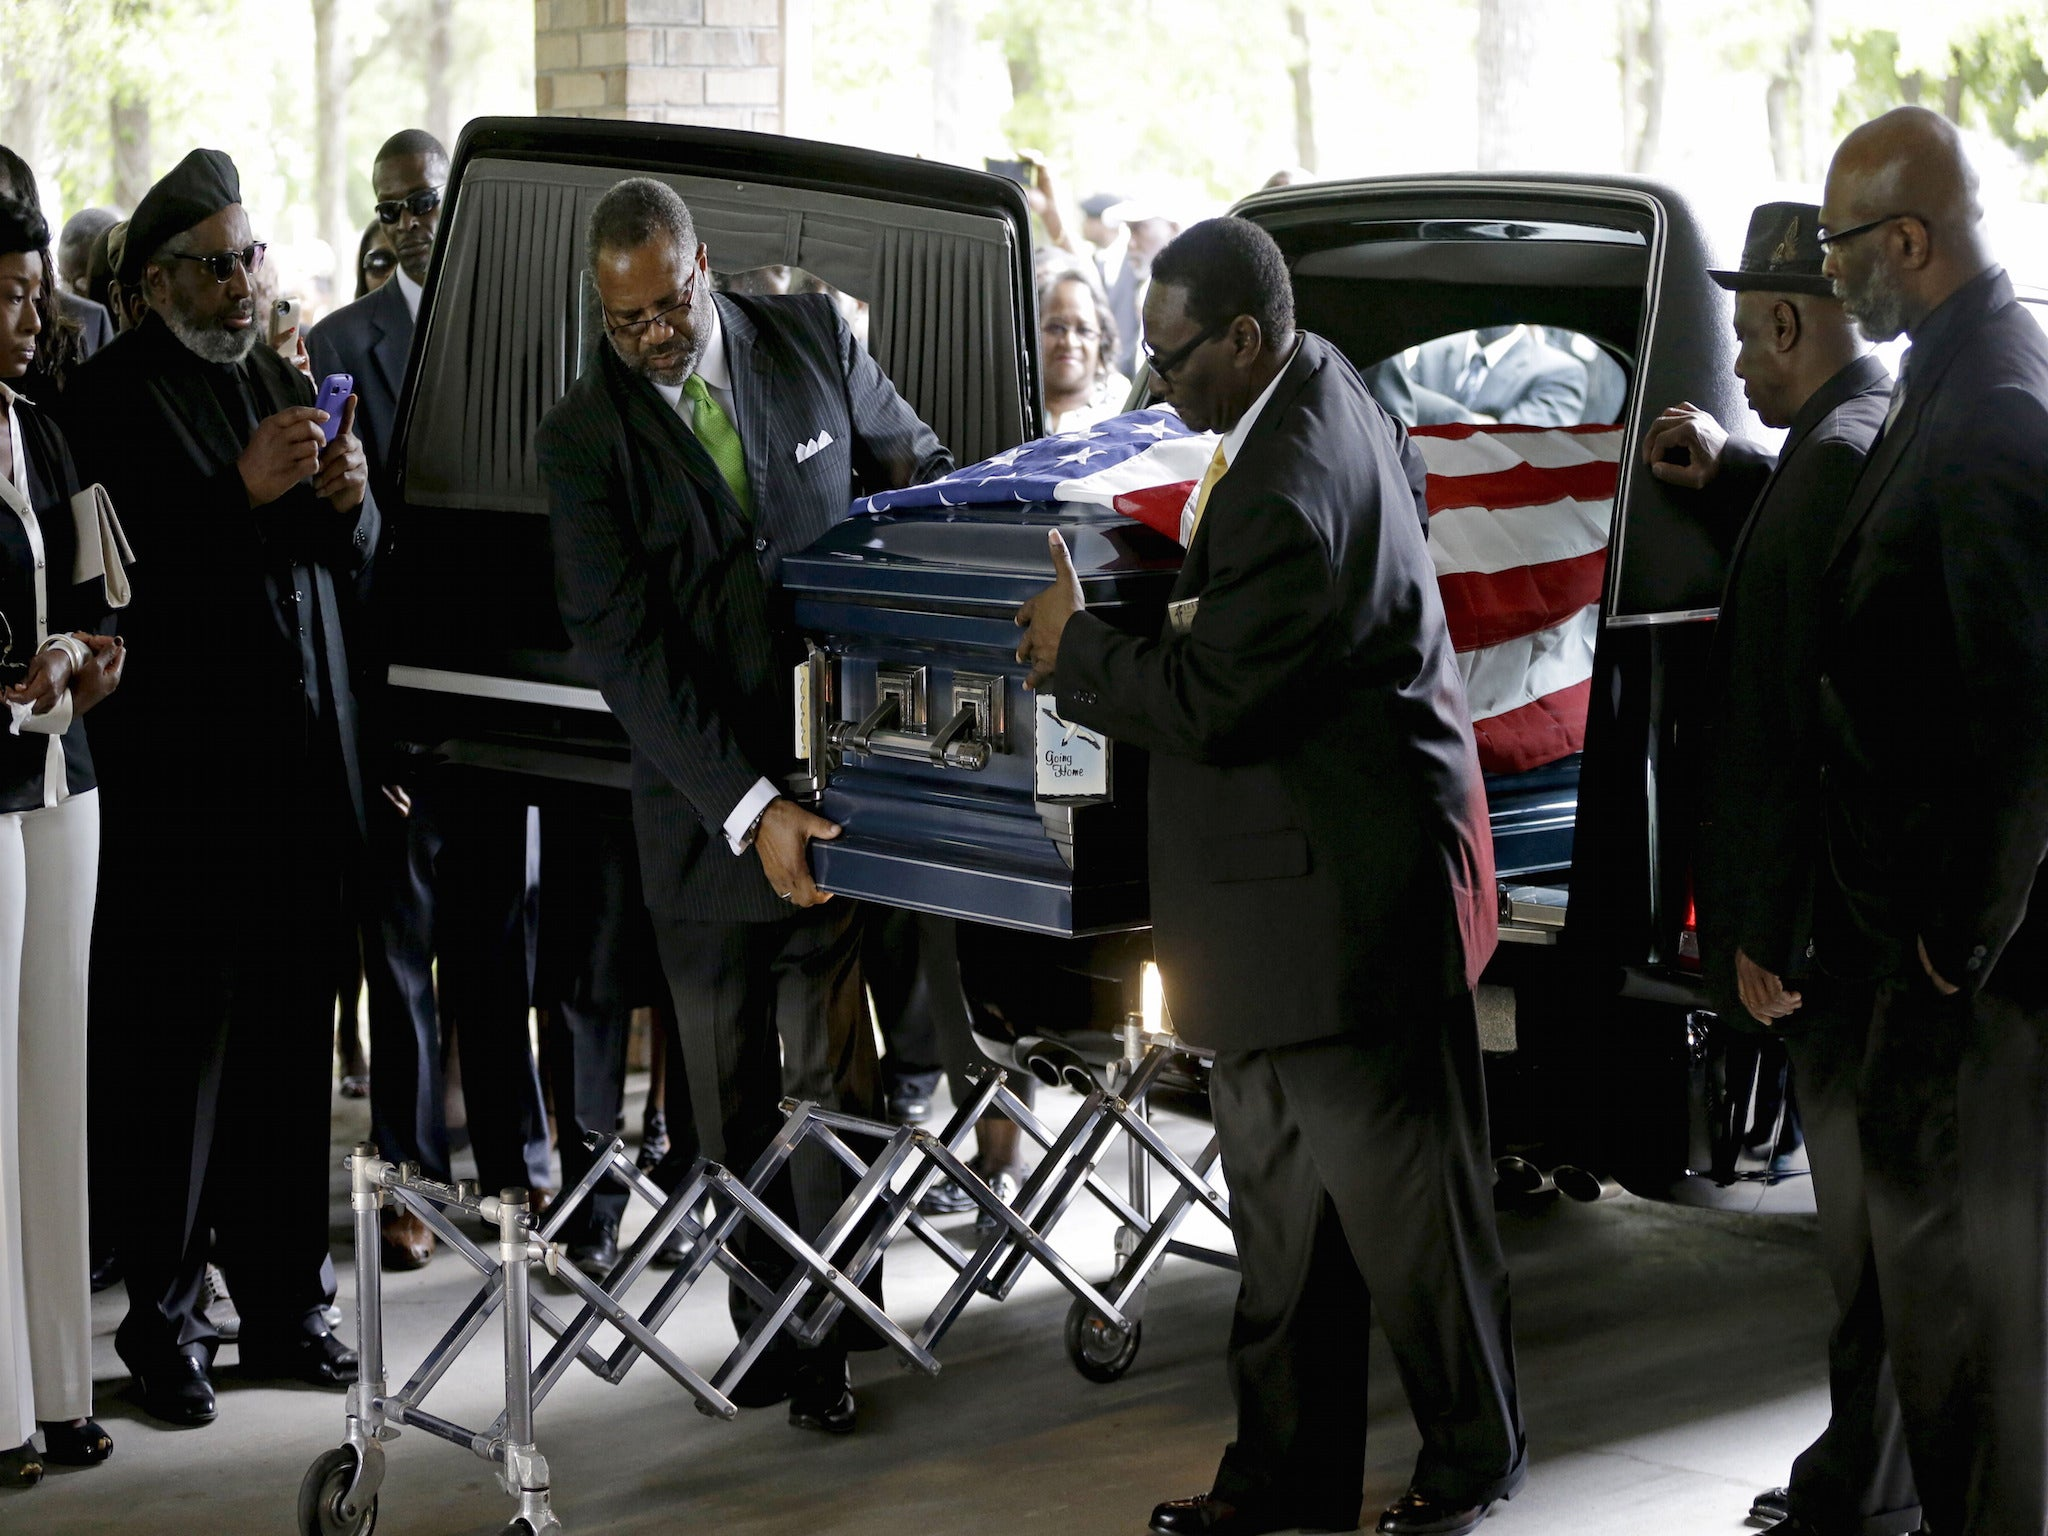 Walter Scott Shooting >> Walter Scott shooting: Killing was motivated by 'overt racism', mourners at funeral told | The ...